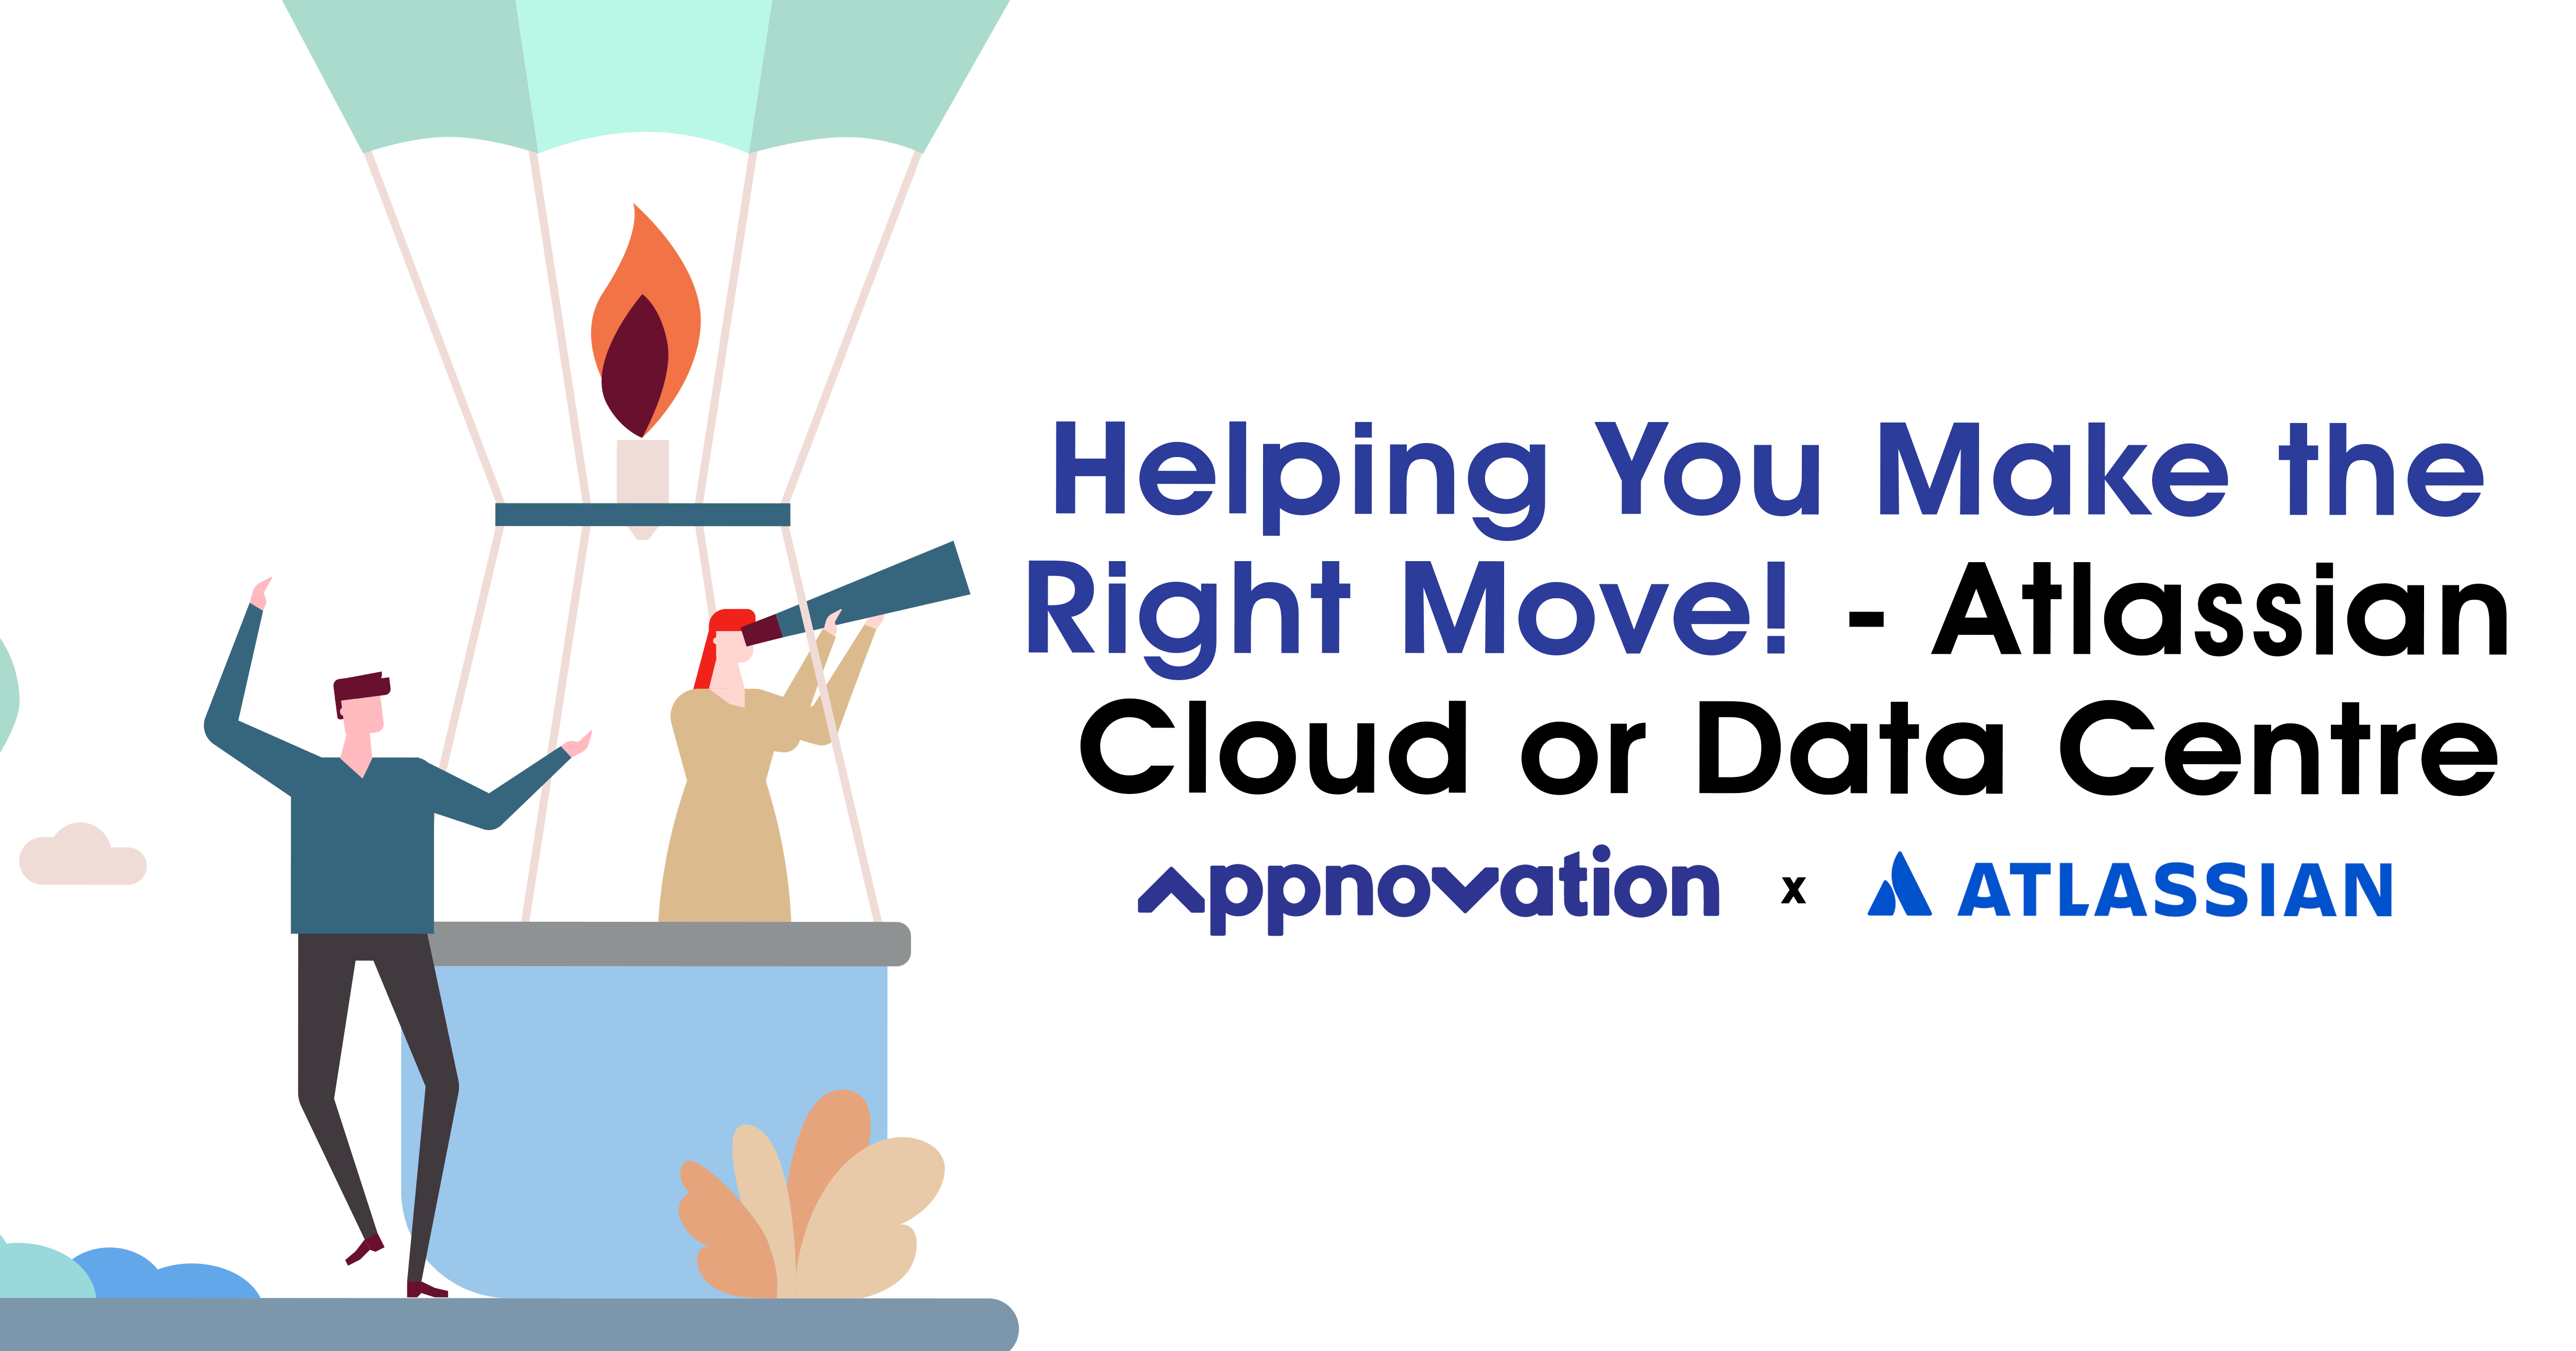 Helping you make the right move - Atlassian Cloud or Data Centre